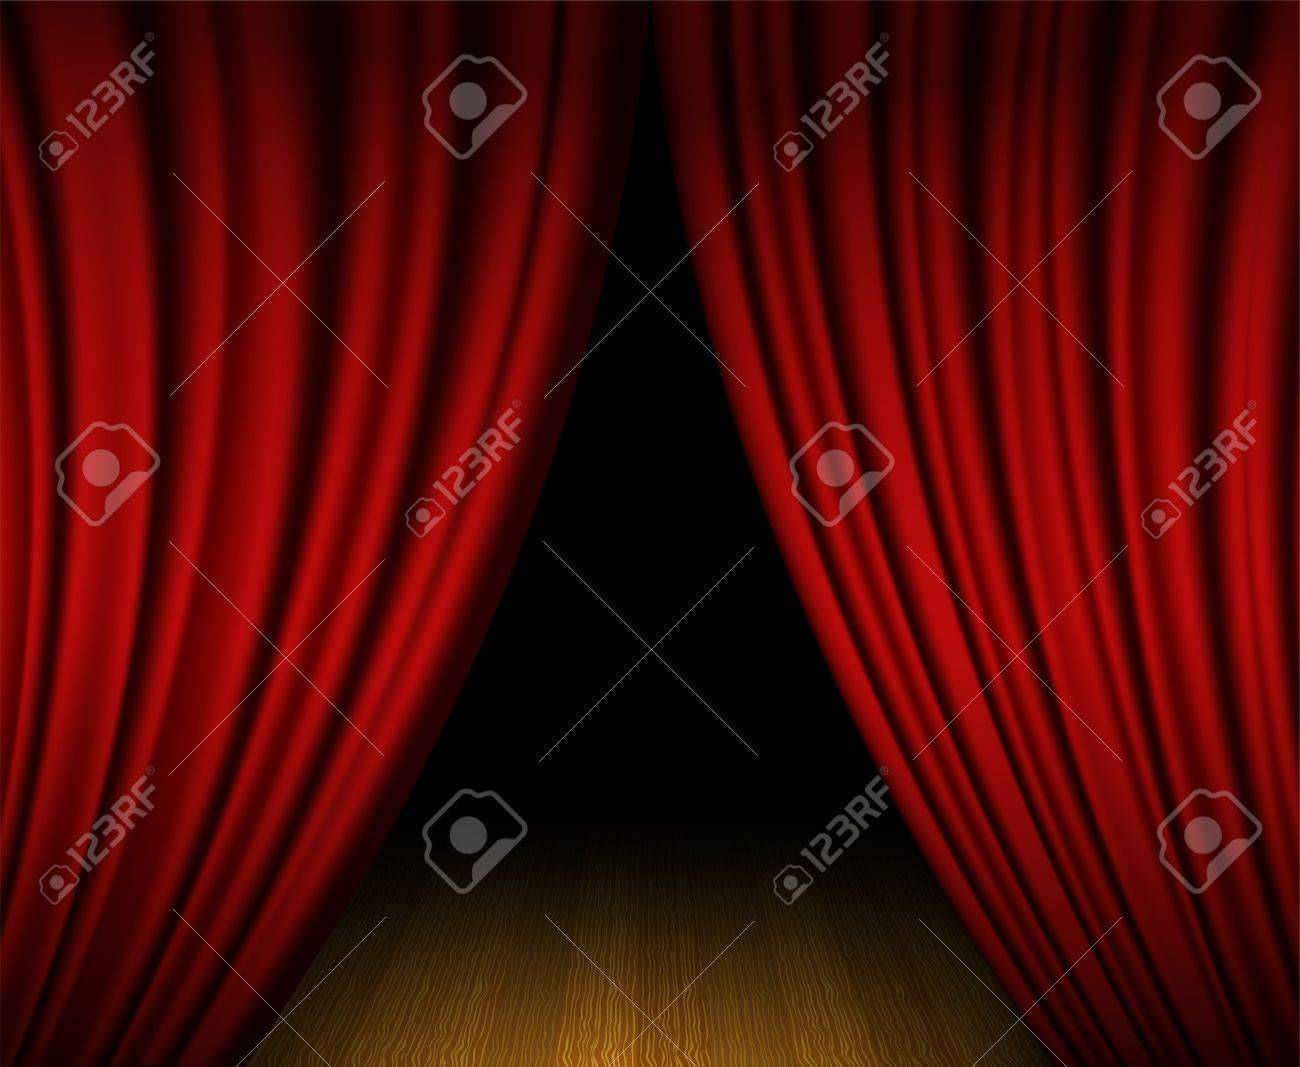 Real open stage curtains - Real Open Stage Curtains Red Open Curtain On Wooden Stage Stock Vector 20240756